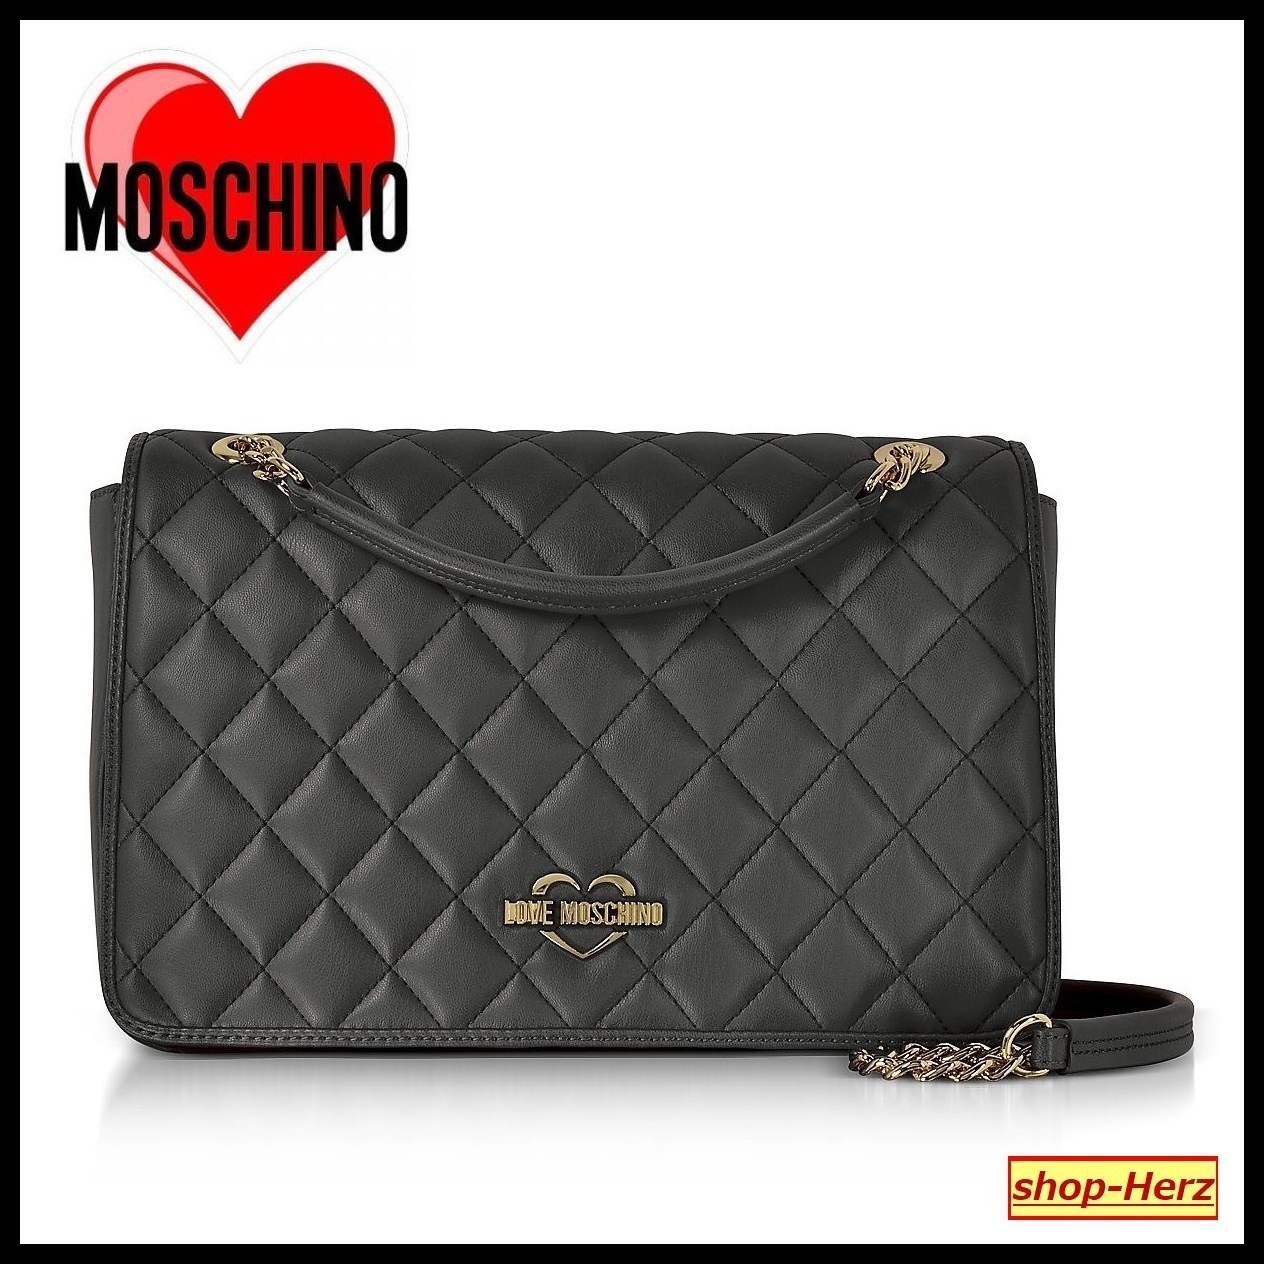 ★Love Moschino★ Black Superquilted ショルダーバッグ 関税込